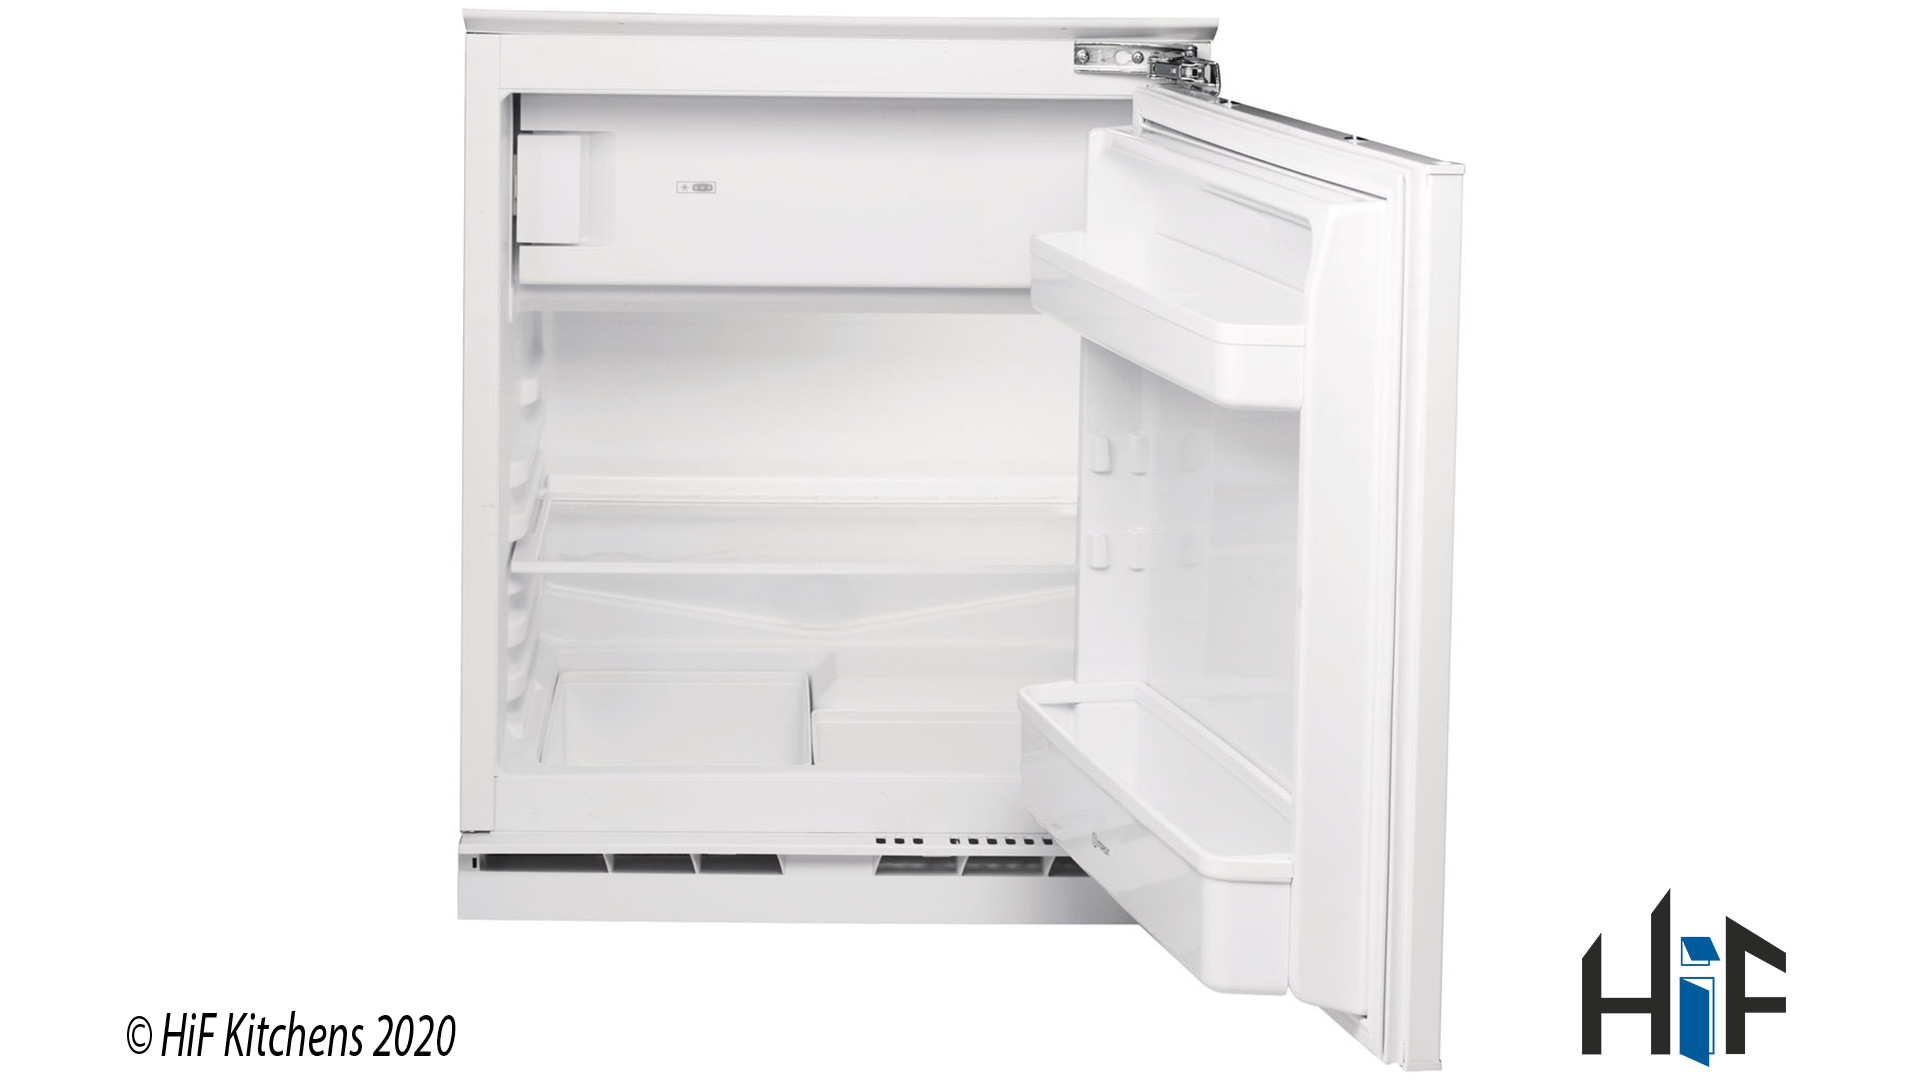 Indesit IFA1.1 Built Under Integrated Fridge supplied by HiF Kitchens